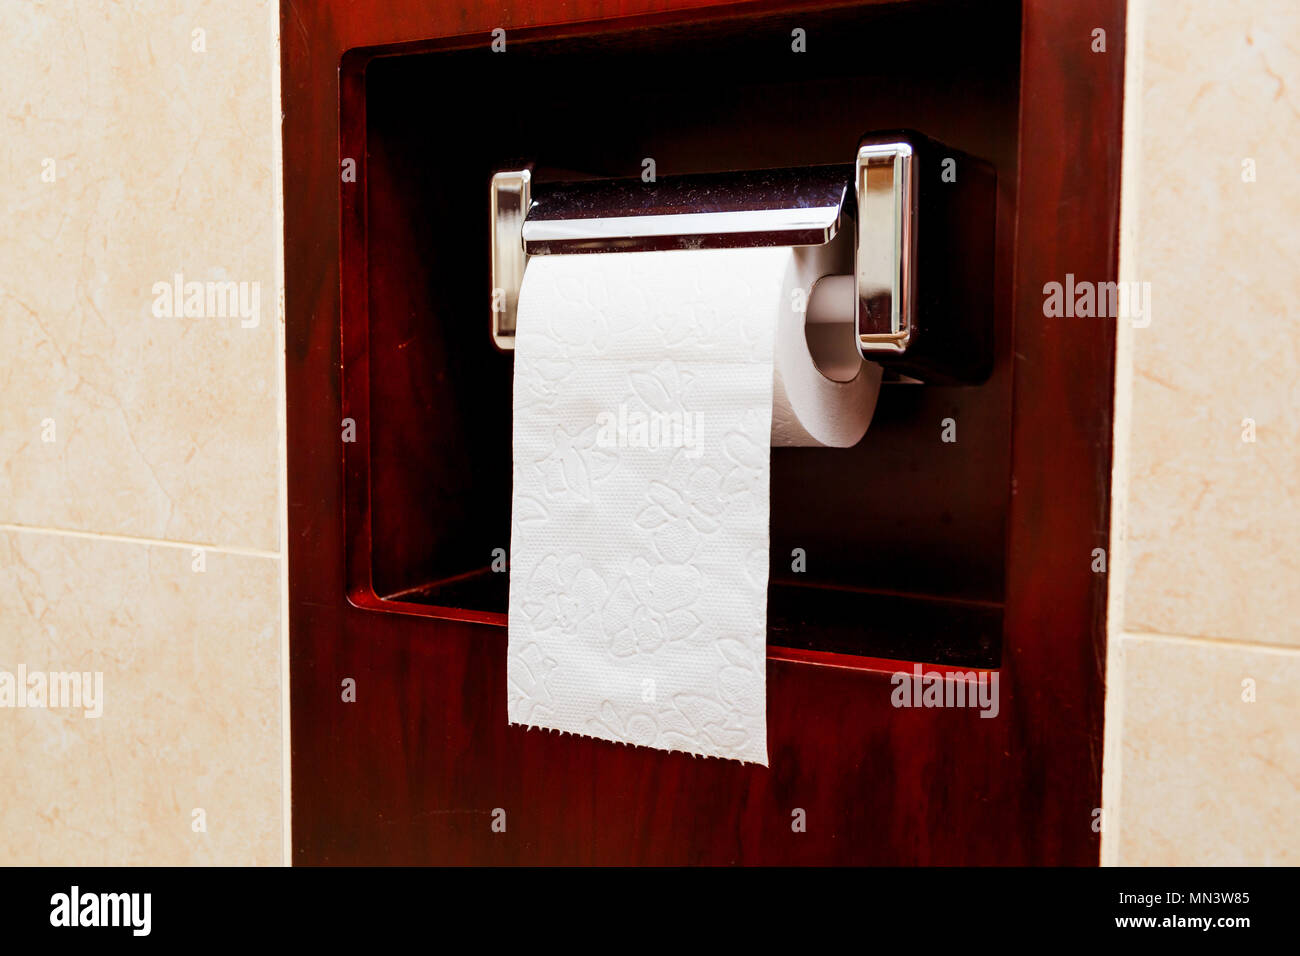 Roll of toilet paper on a brass fixture - Stock Image